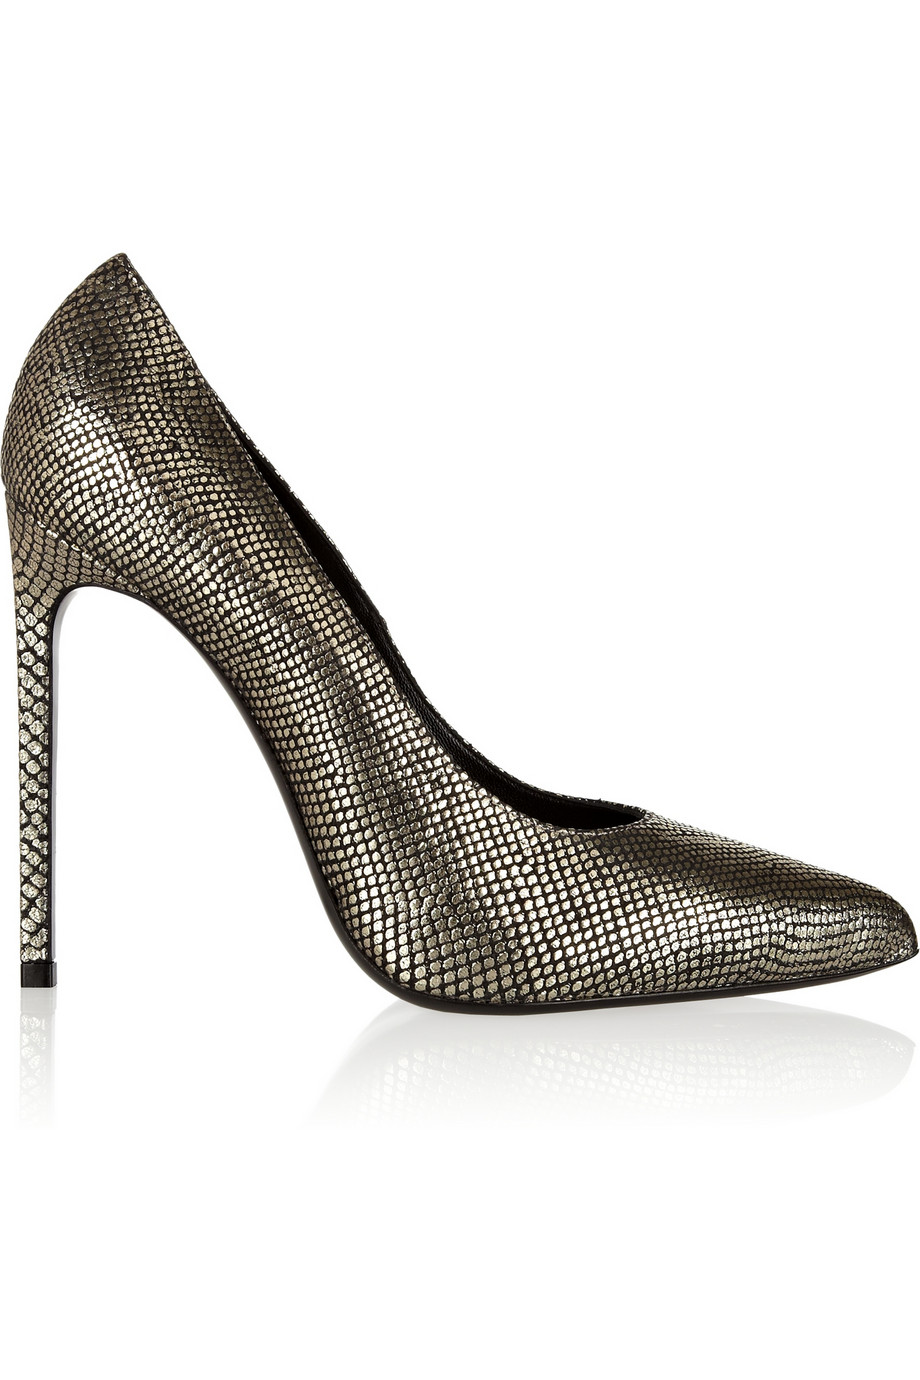 Saint Laurent Metallic Snake Effect Pumps $435